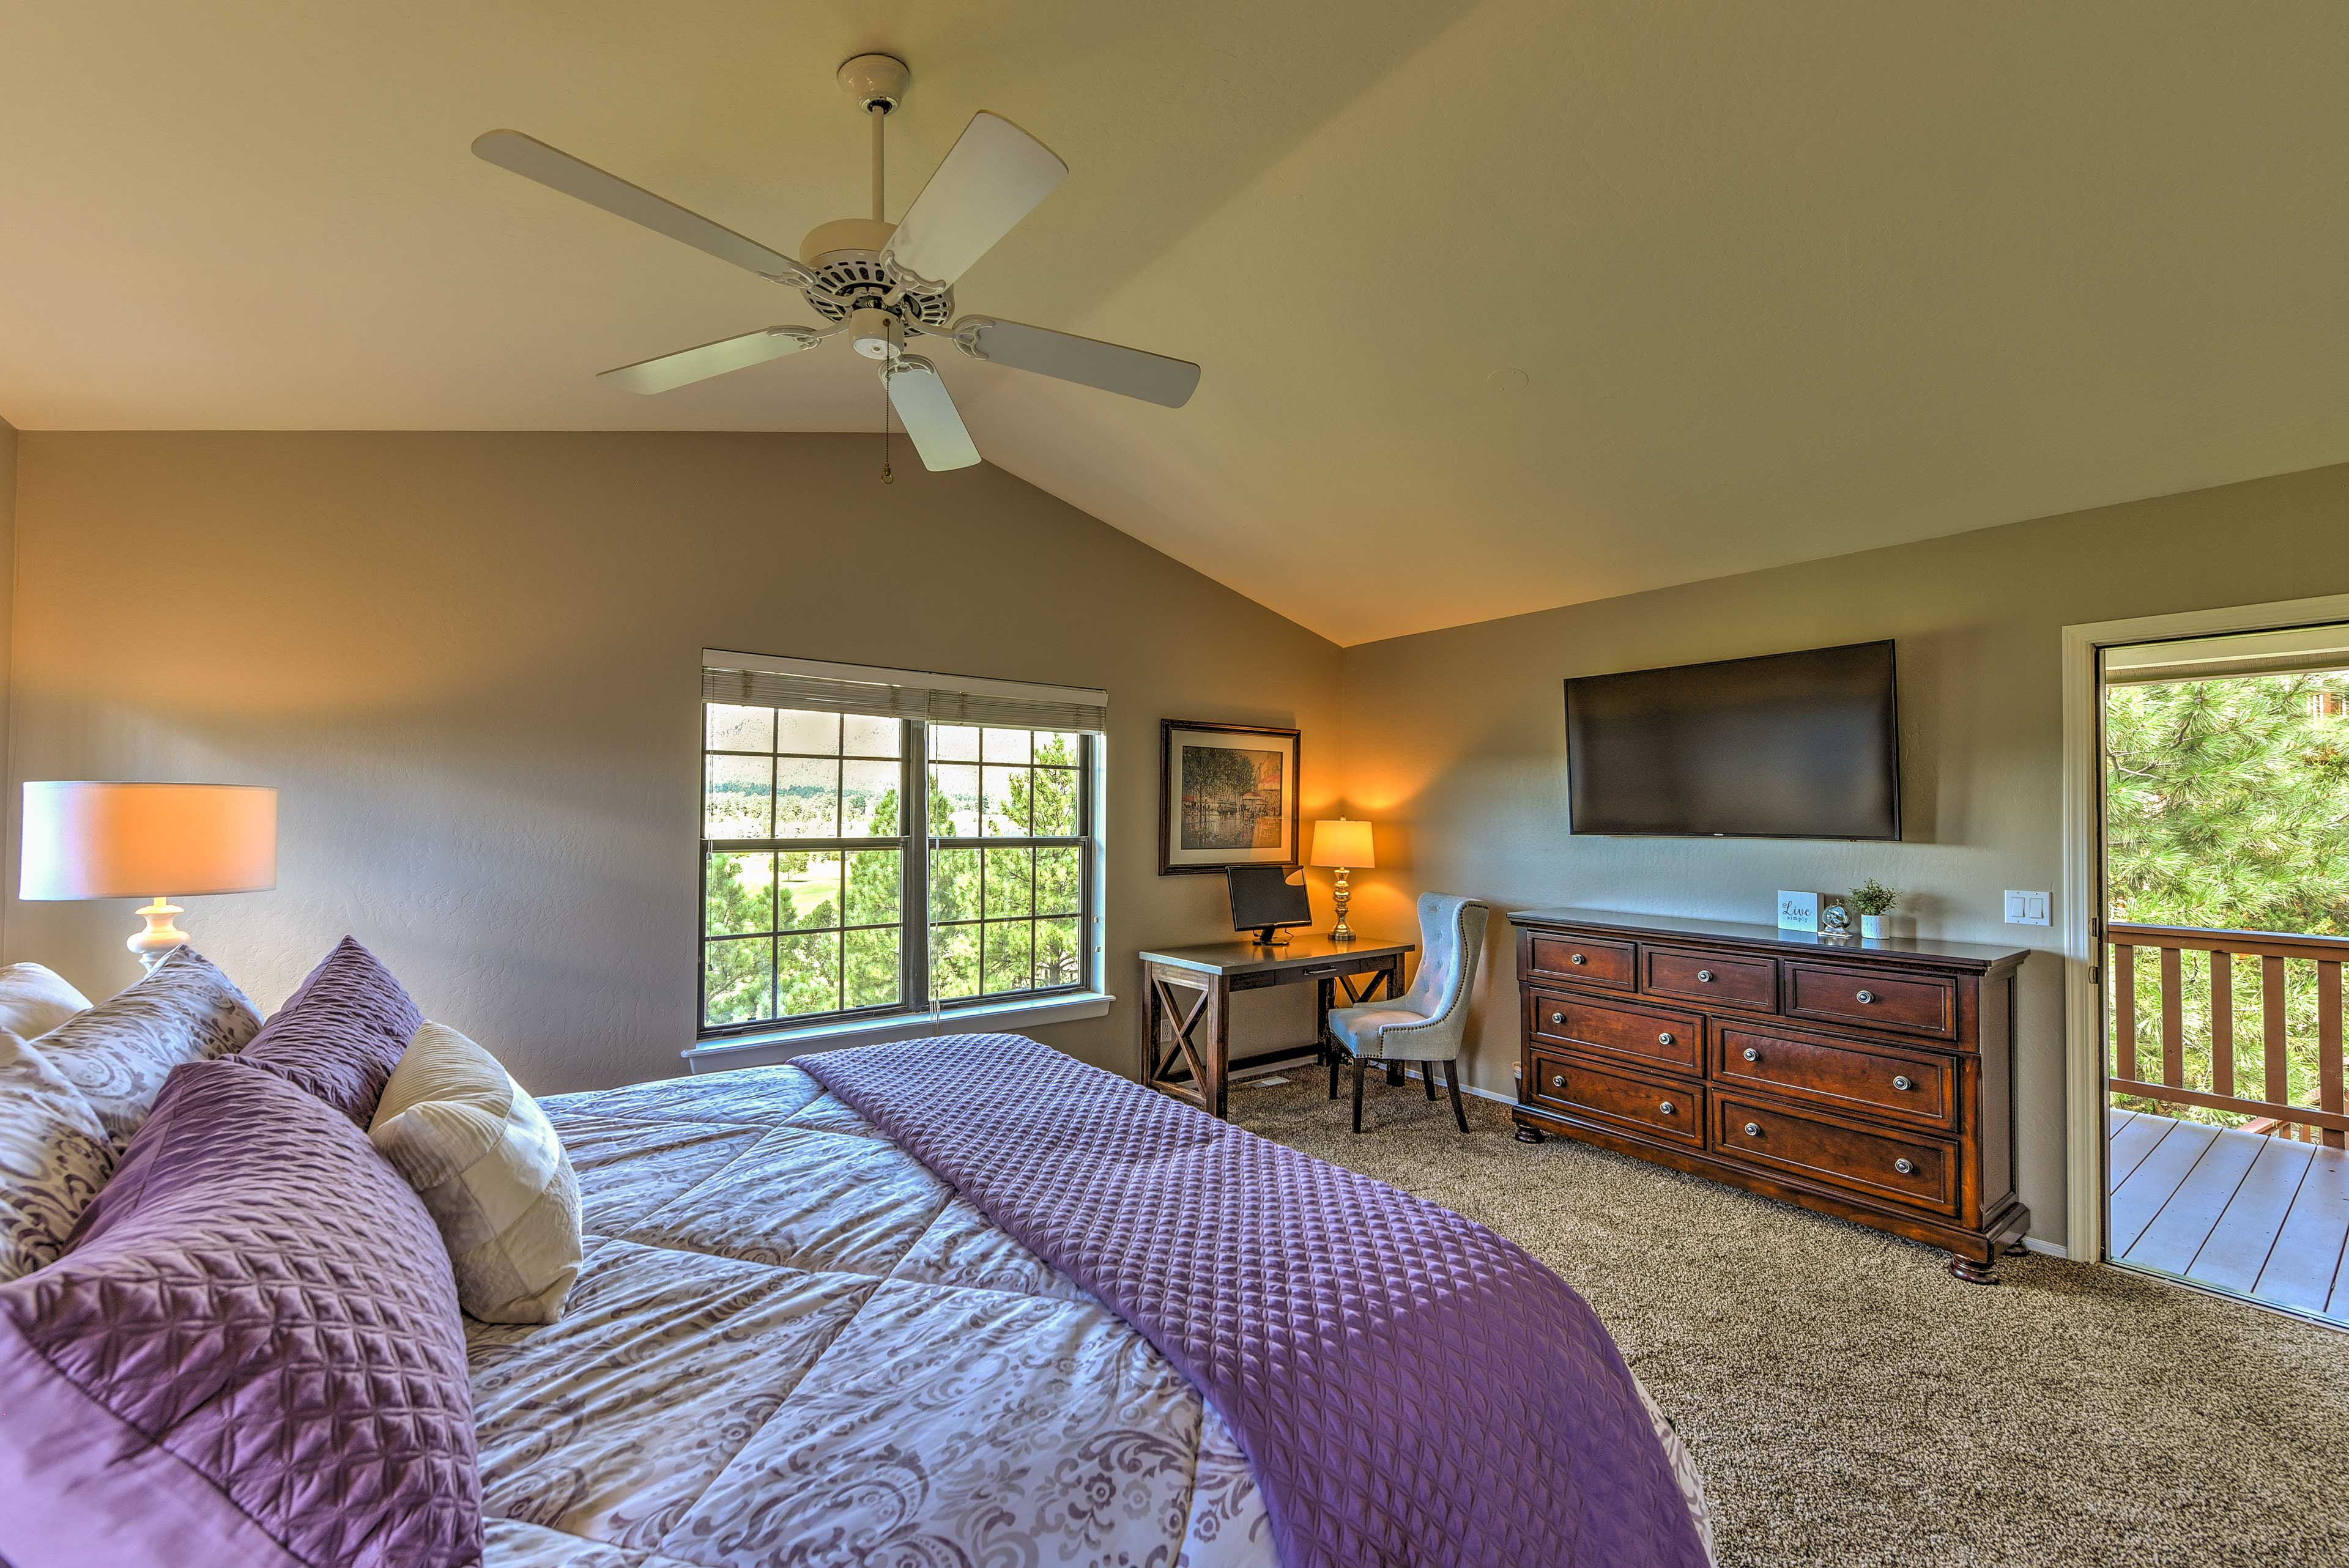 The master suite boasts private access to the deck and a king bed.